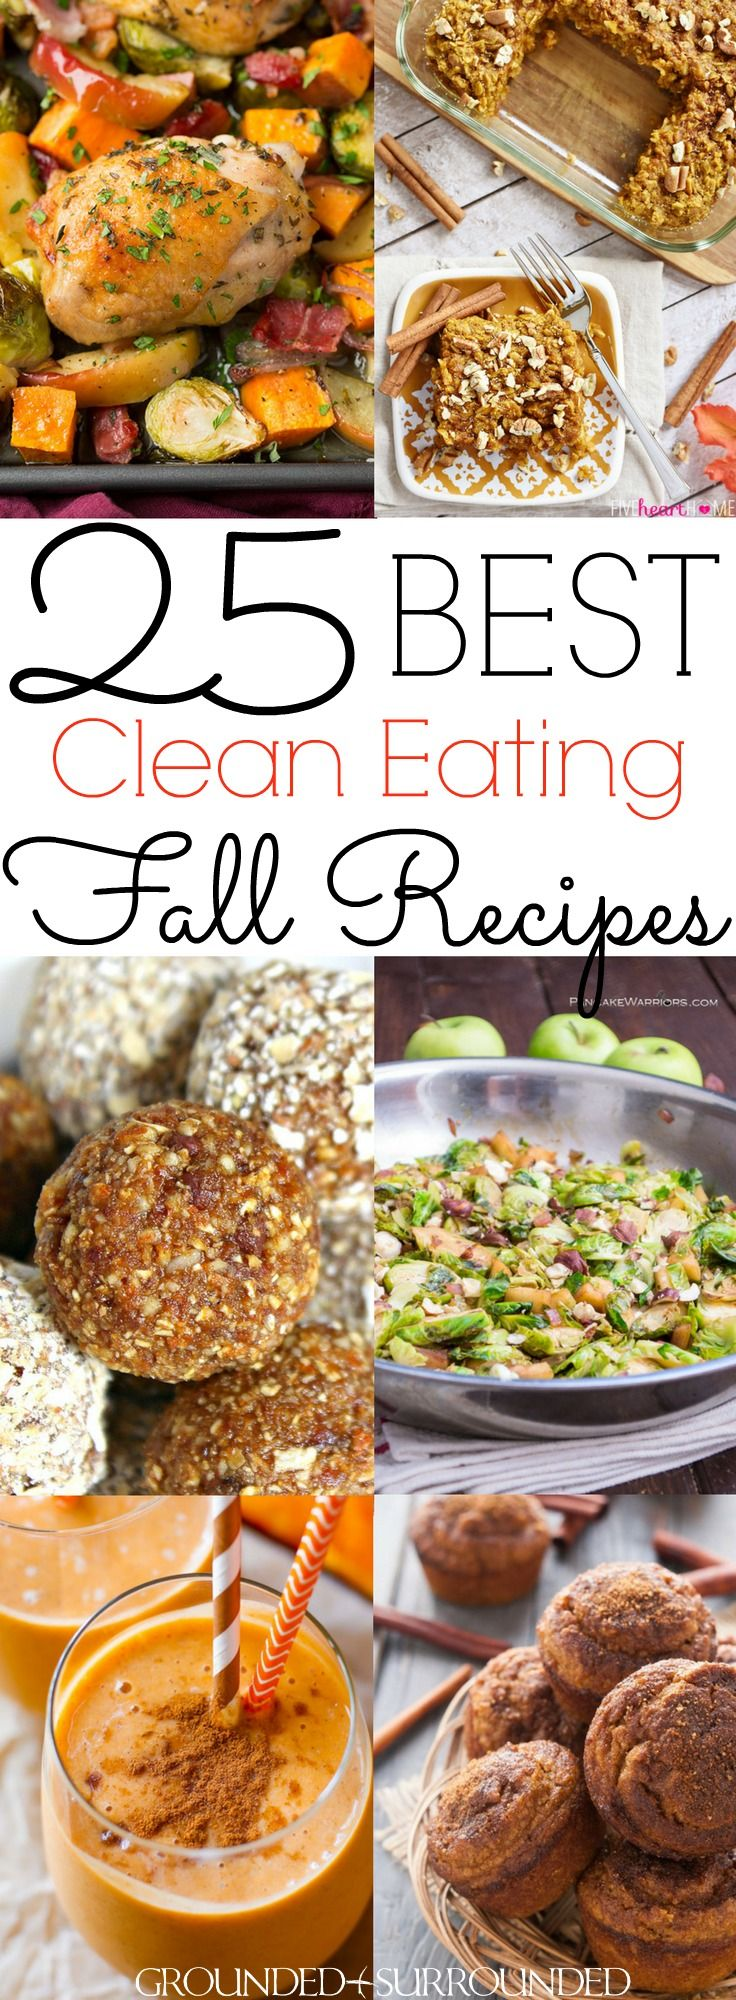 The 25 BEST Clean Eating Fall Recipes   Autumn is my favorite season to cook healthy and easy meals. You will find delicious breakfast, dinner, lunch, dessert and snack ideas. Not to mention soup, stew and drinks that use pumpkin, apple, brussels sprouts and squash recipes to satisify your need for classic, comforting and cozy flavors! Most are gluten free / Paleo / low carb / dairy free, but vegetarian and vegan substitutions can be made too.